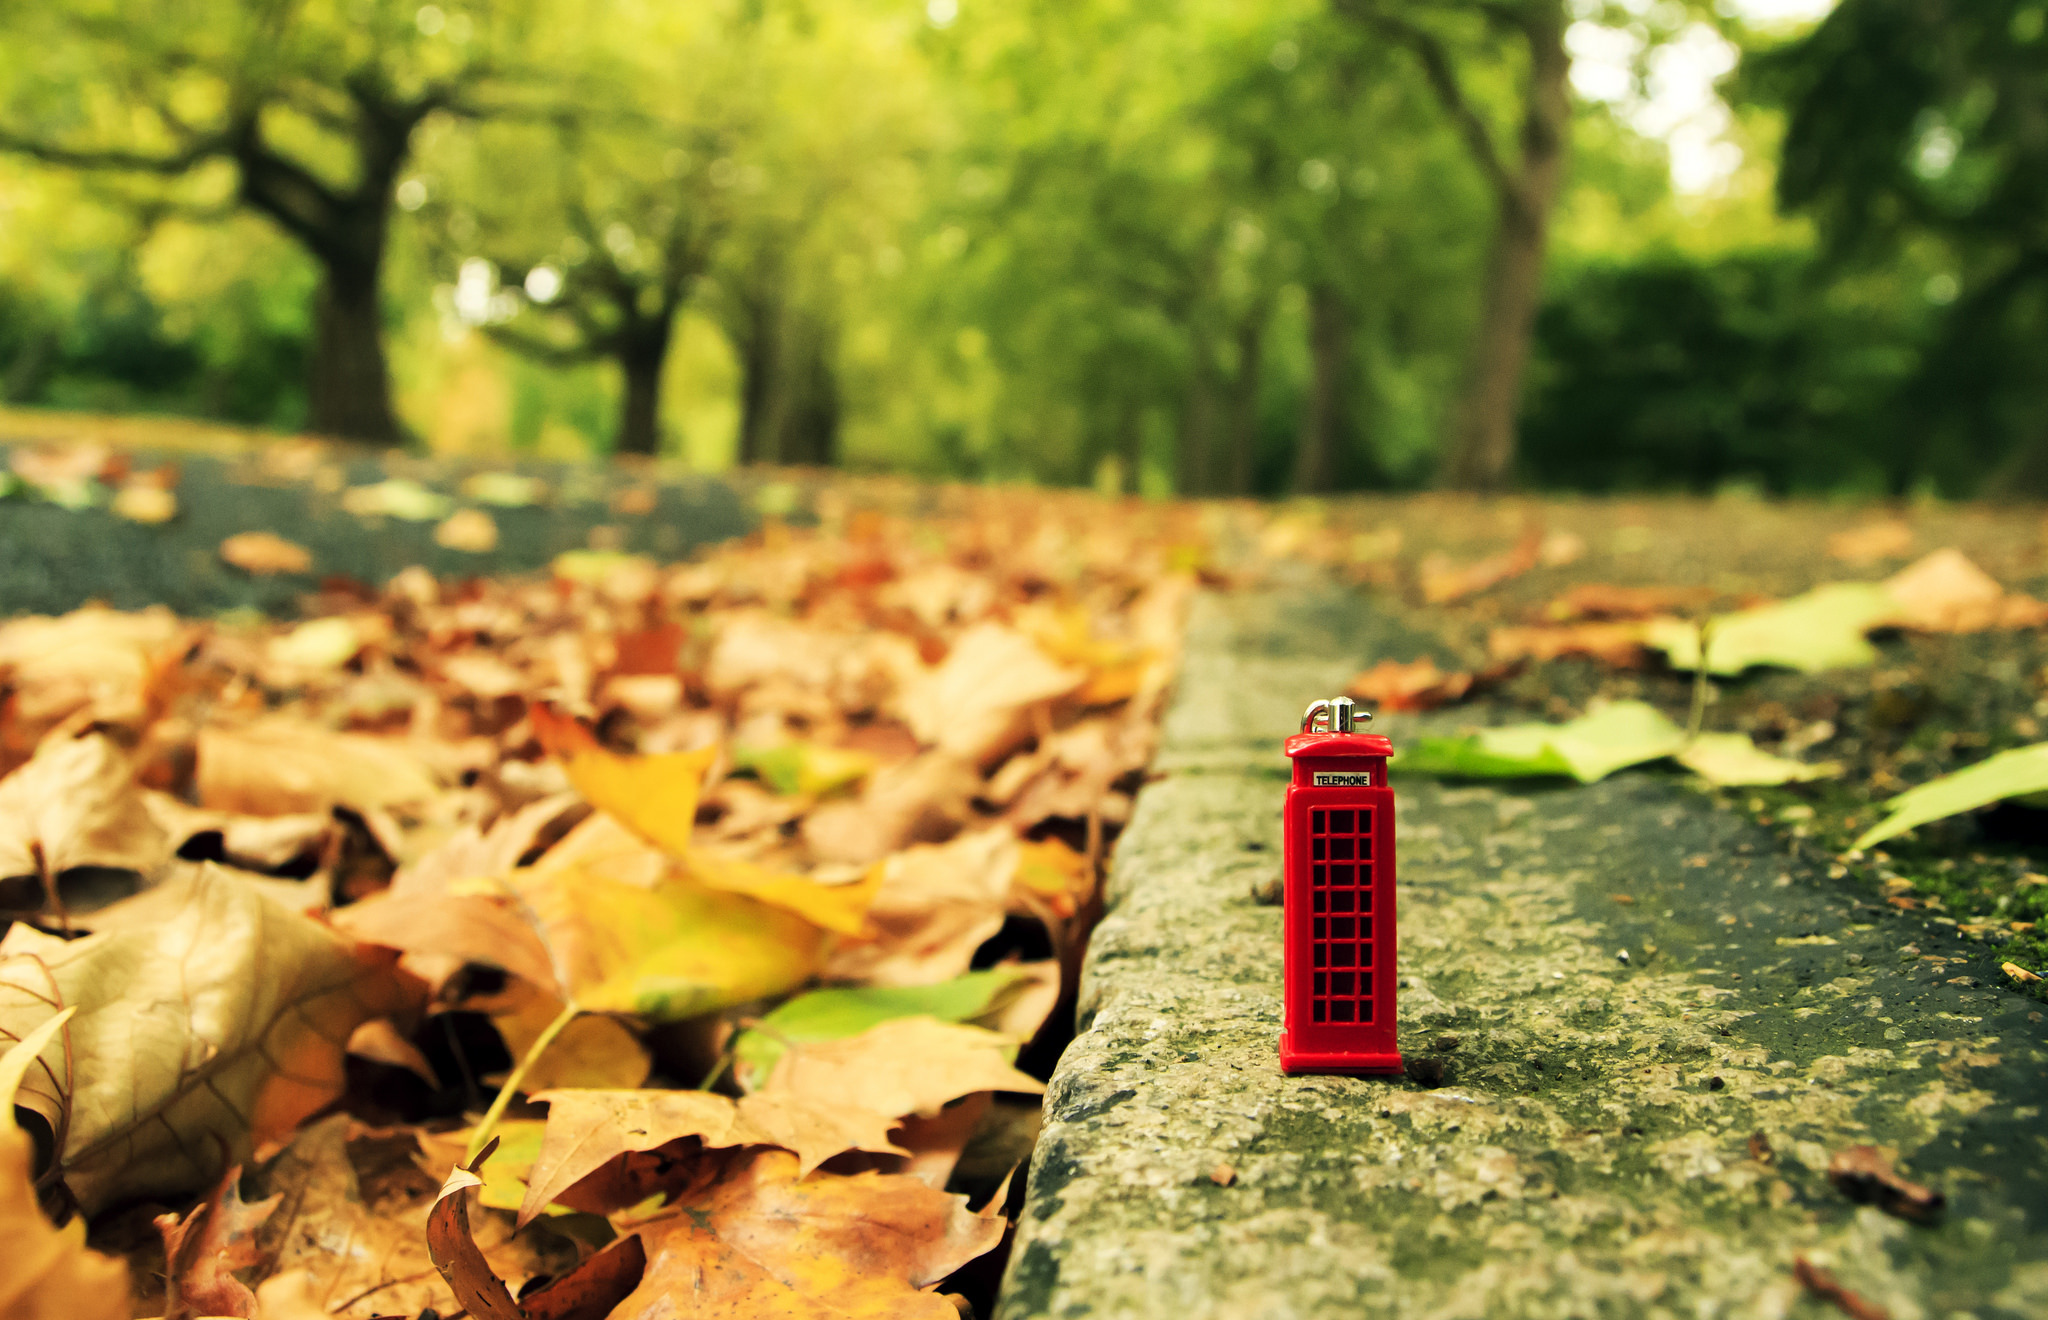 A miniature telephone box surrounded by giant autumn leaves.